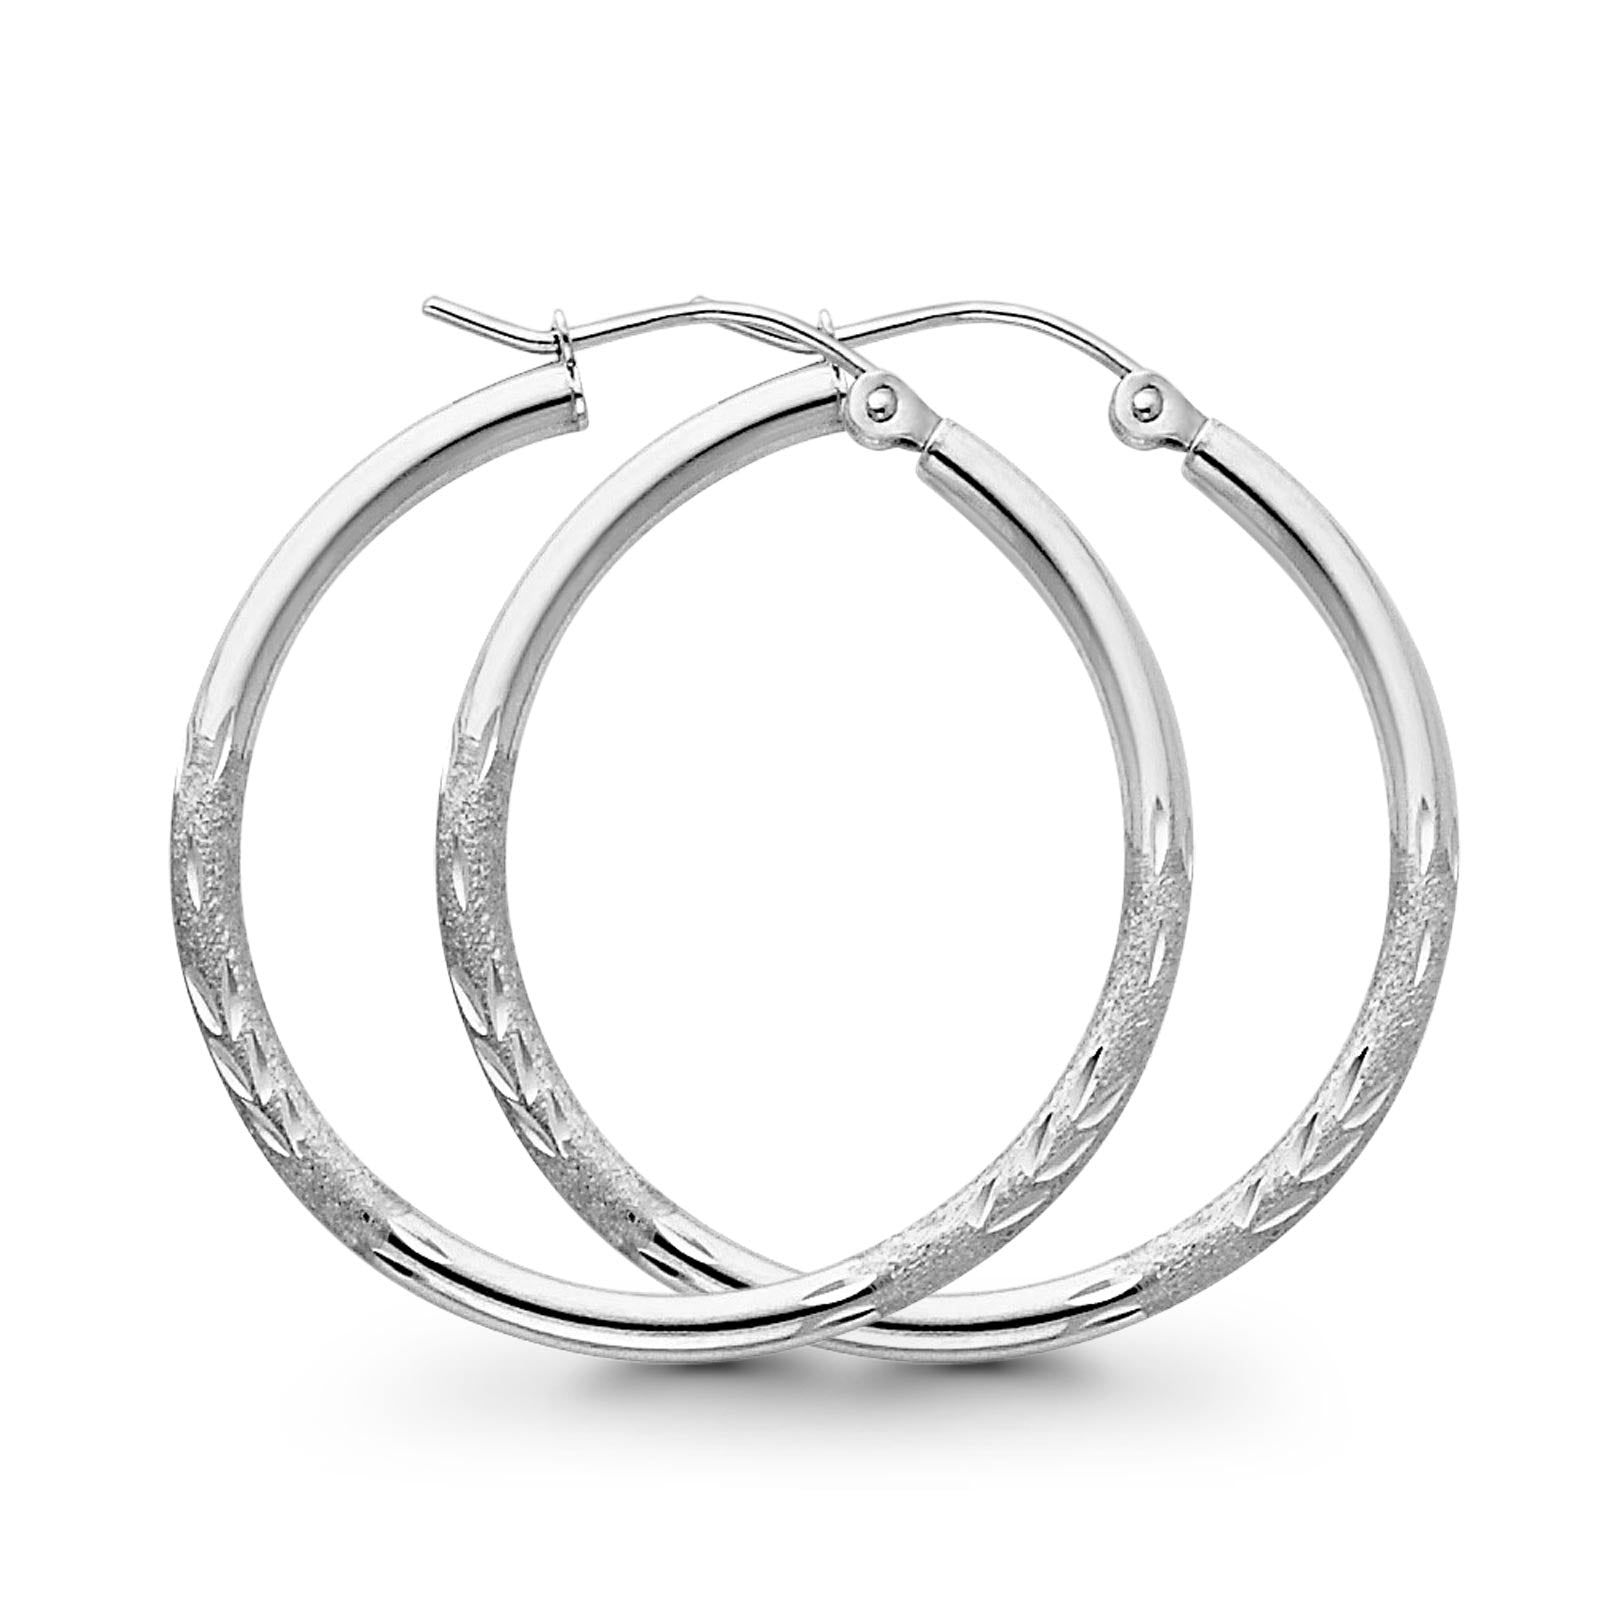 14K White Gold Real Diamond Cut 2mm Snap Closure Hoop Earrings Hinged 1.5grams 30mm